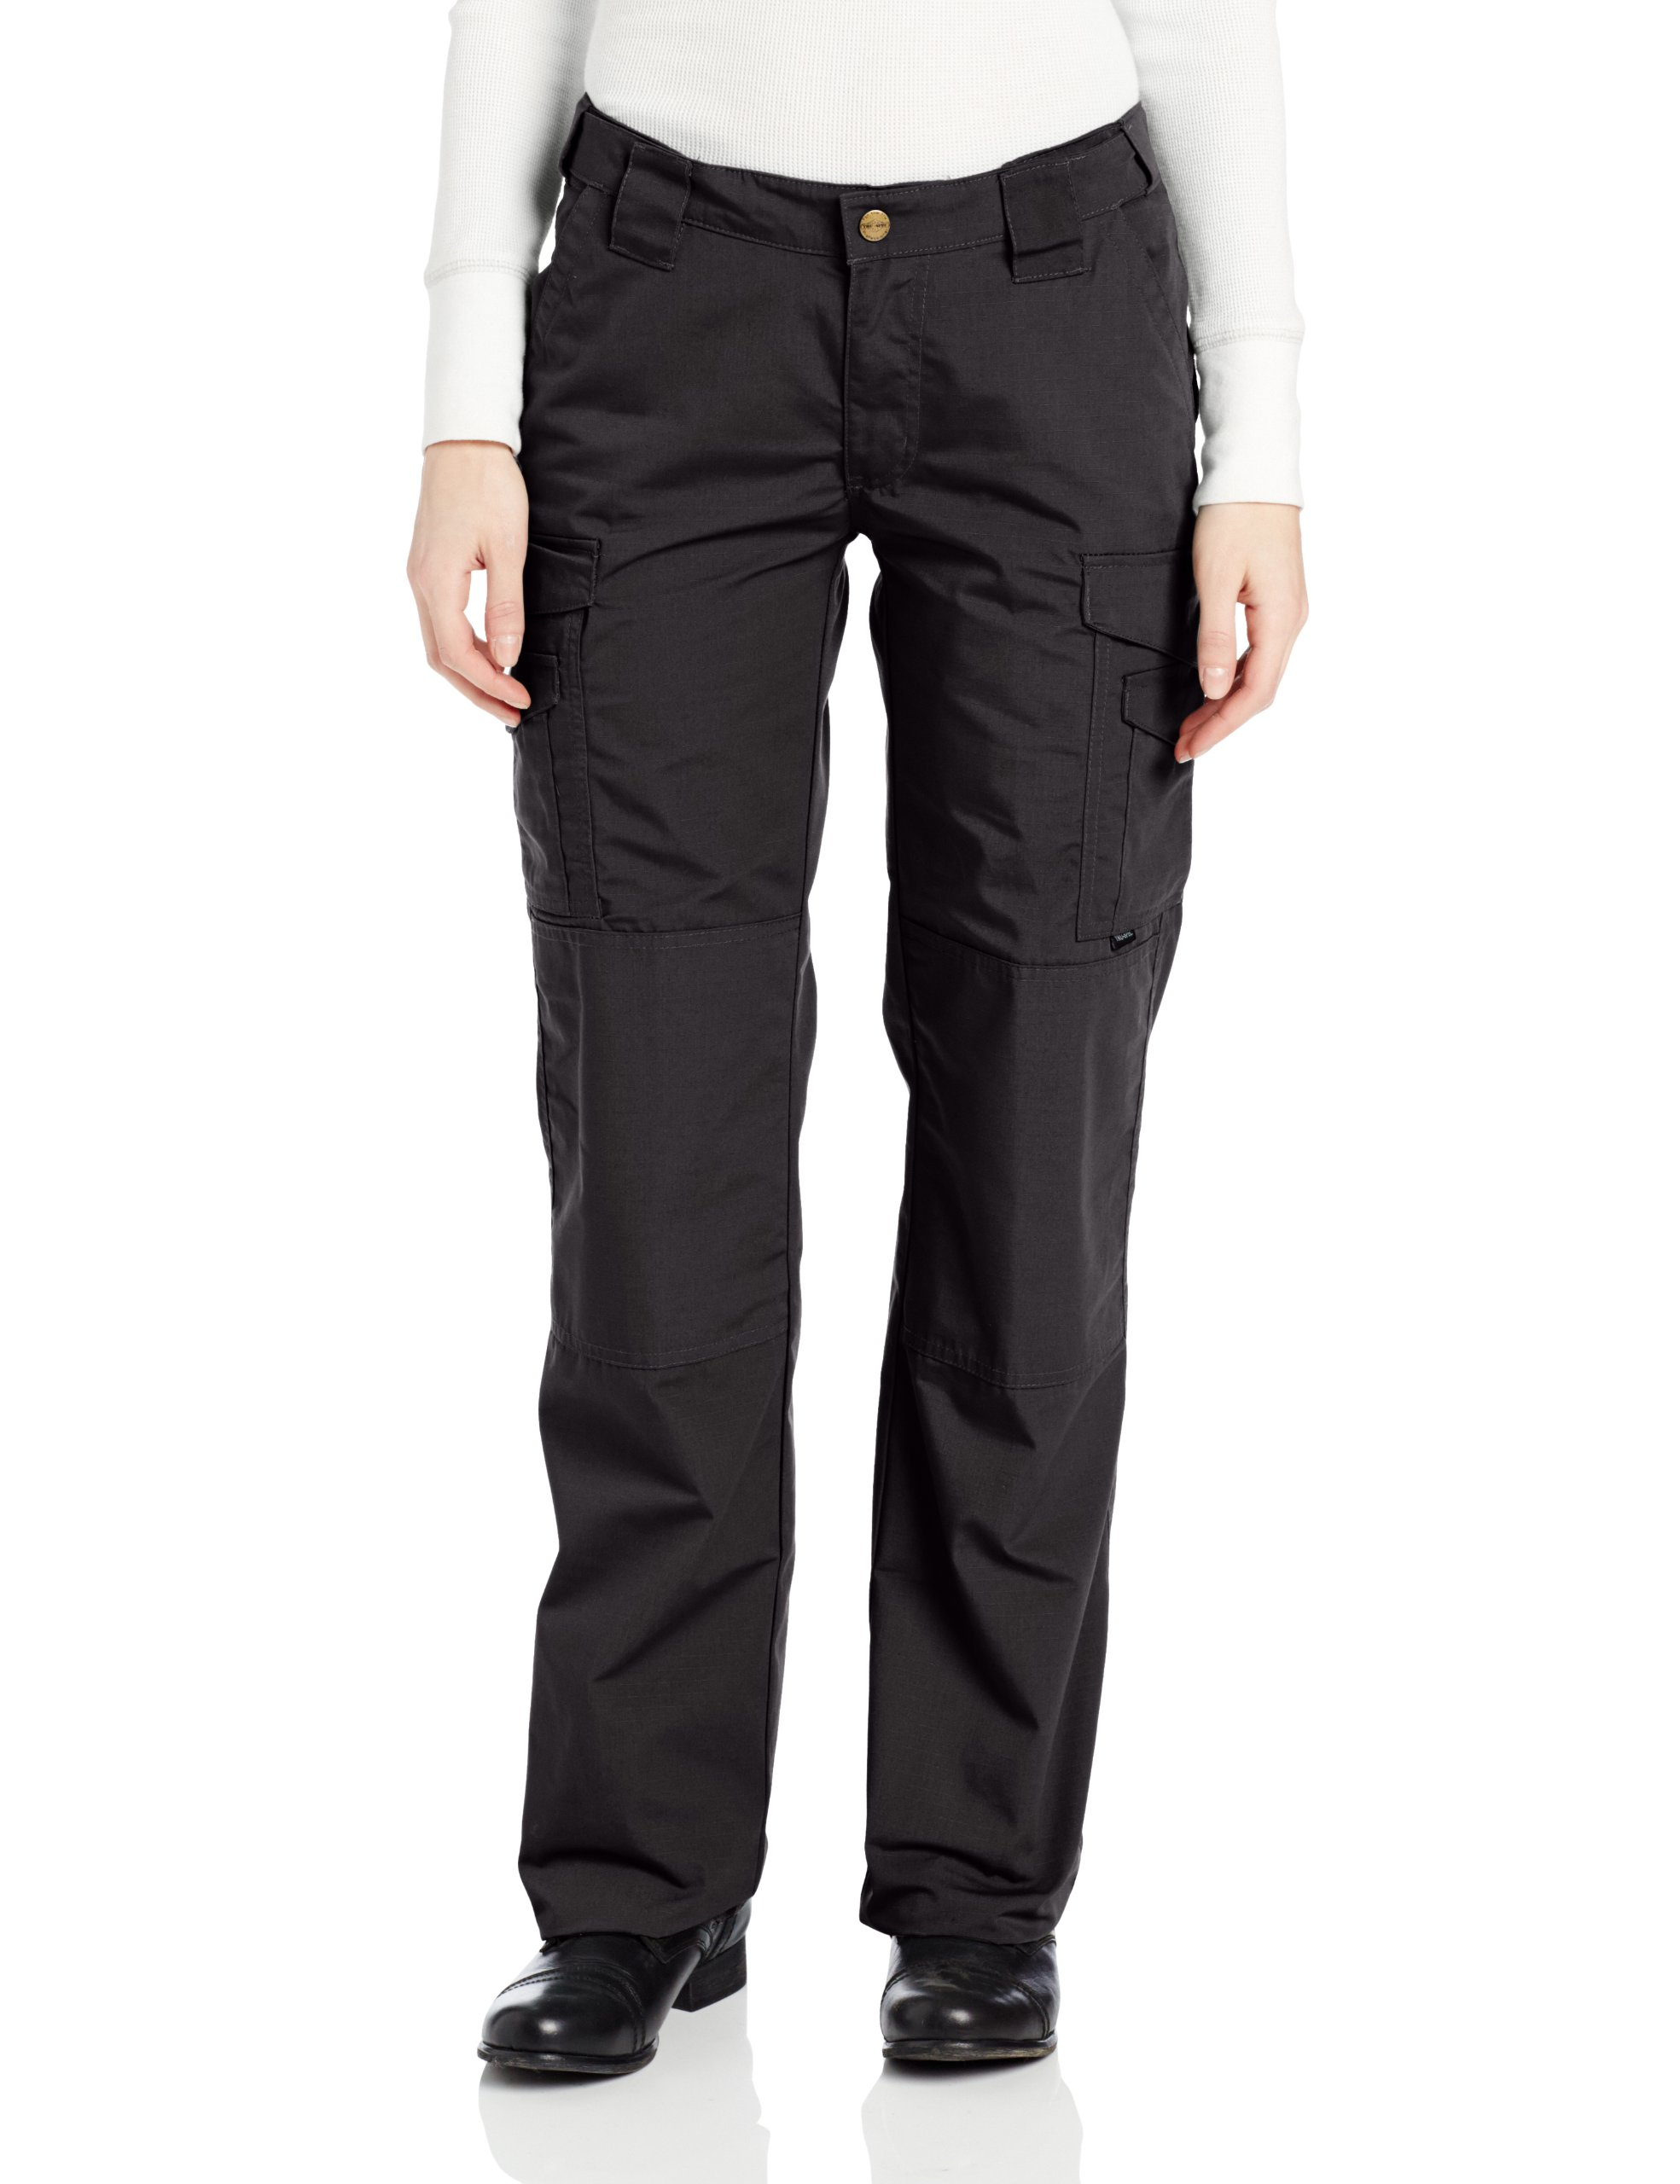 TRU-SPEC Women's Lightweight 24-7 Pant, Black, 8